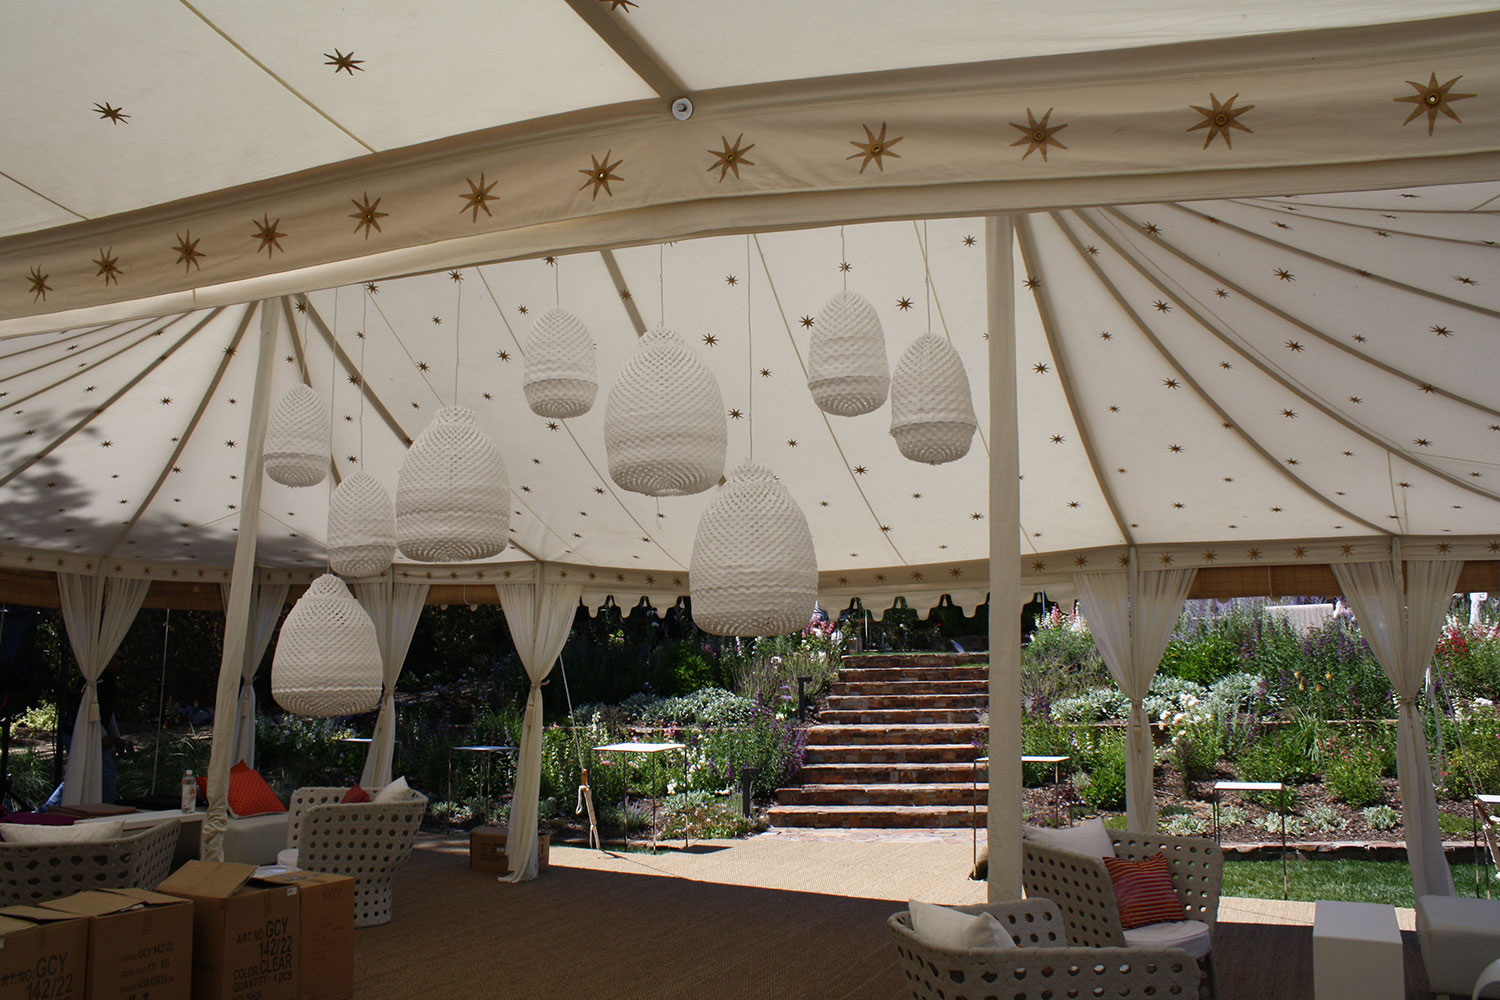 raj-tents-other-themes-interior-maharaja-cream.jpg